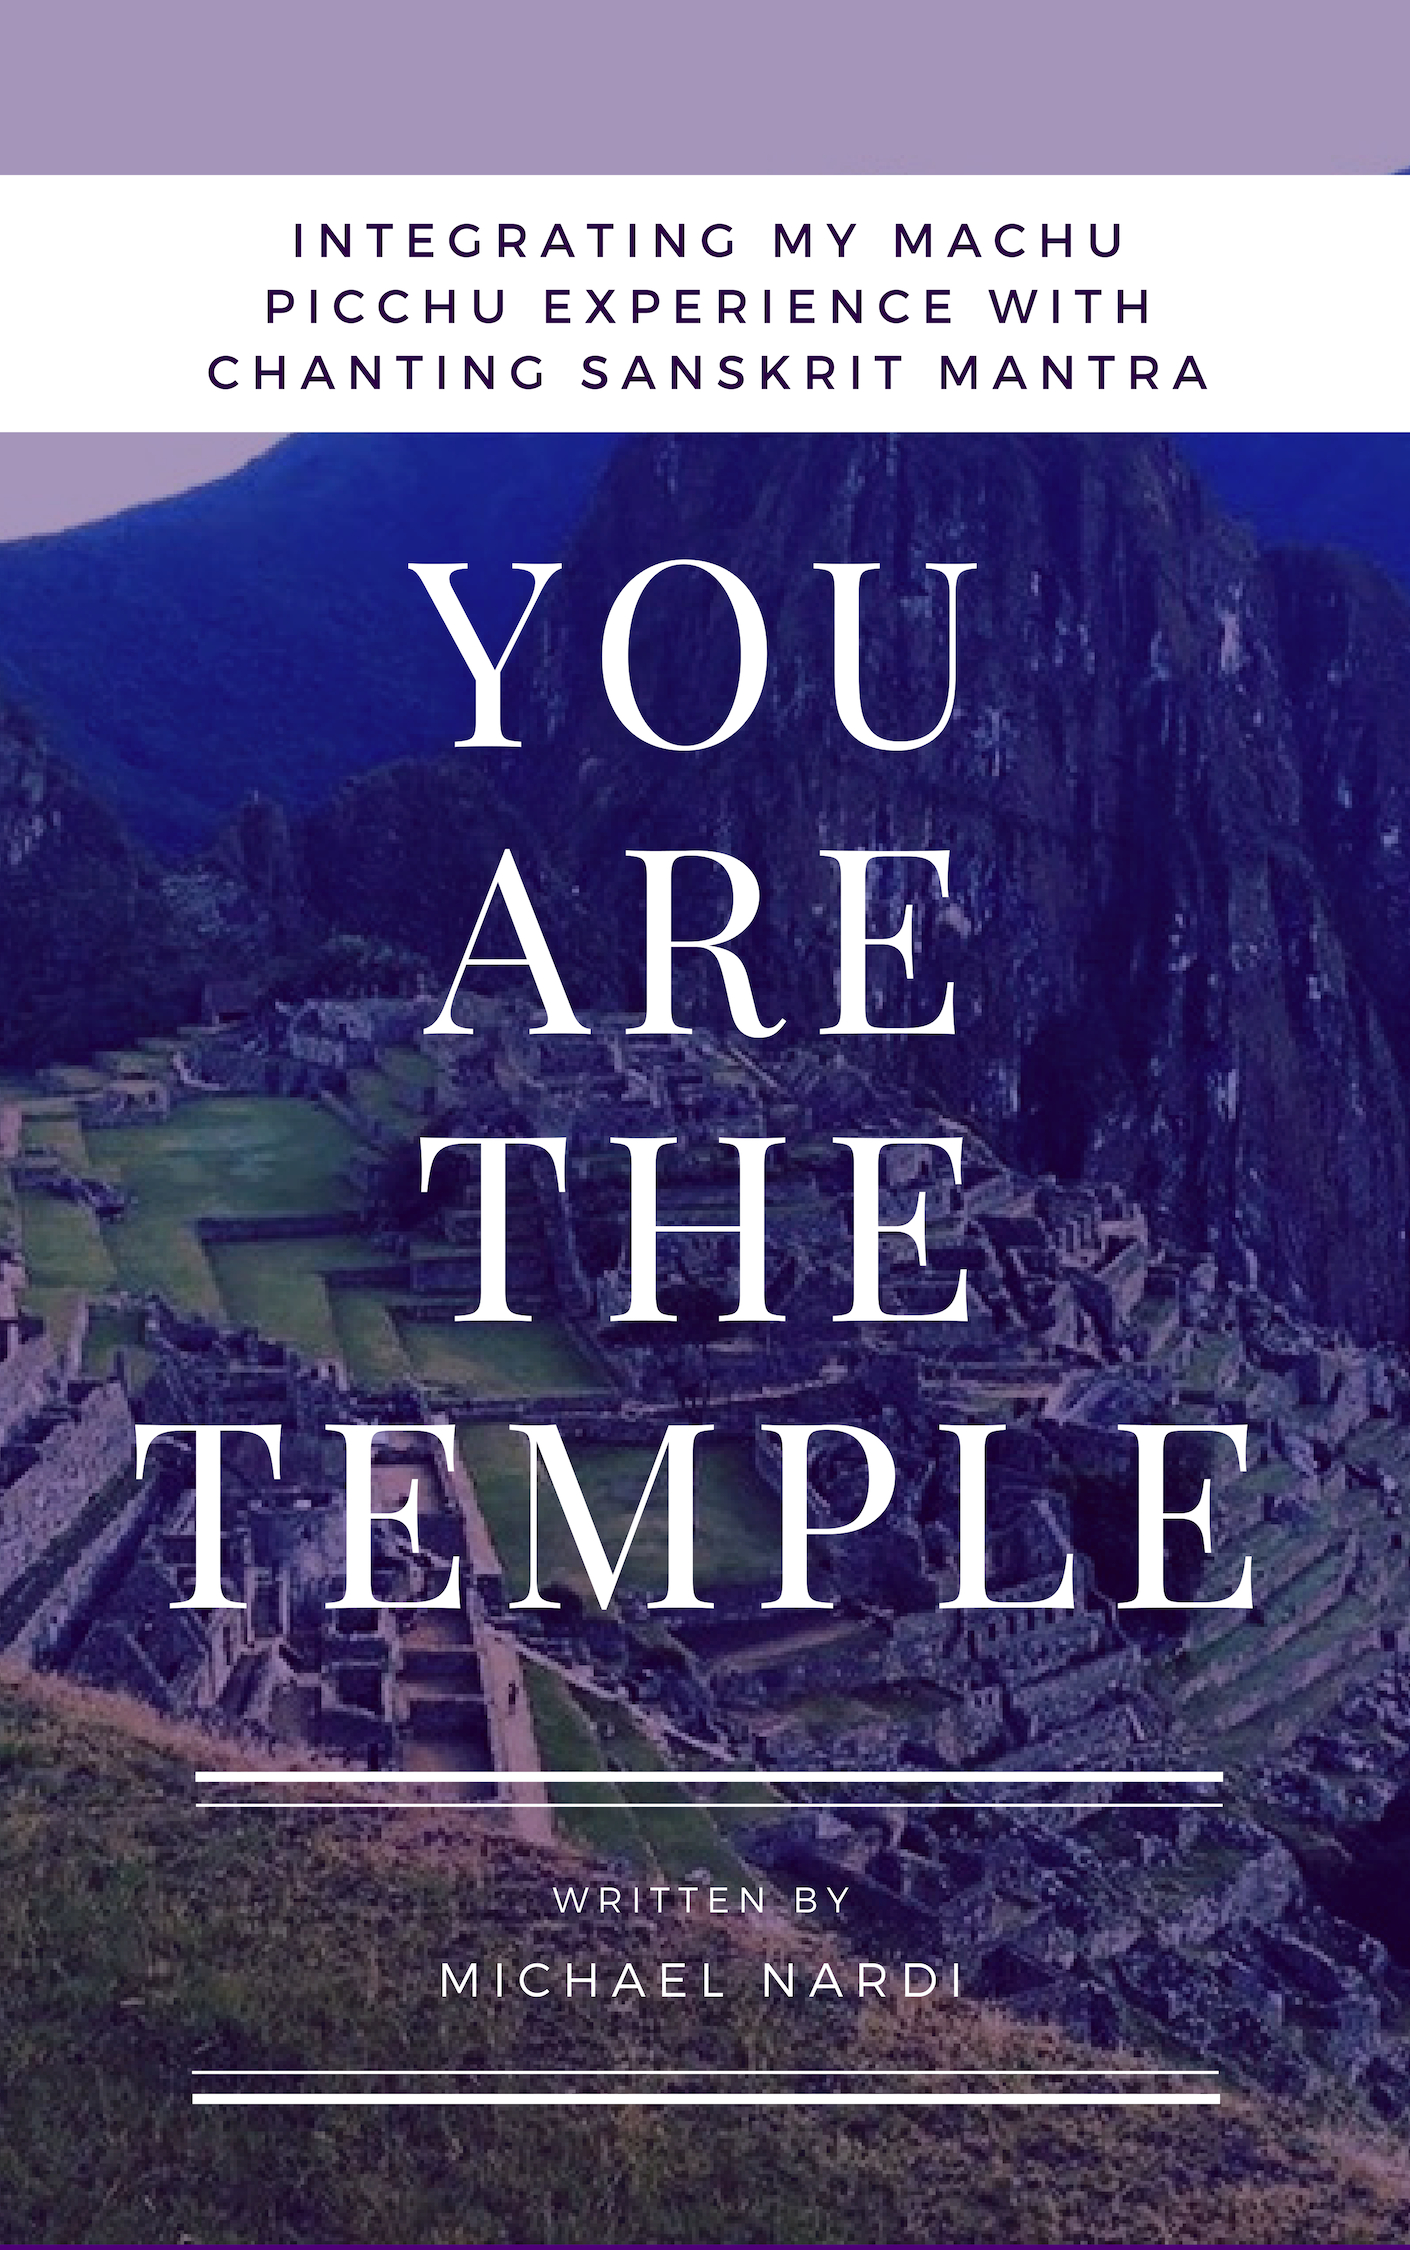 YOU ARE THE TEMPLE: INTEGRATING MY MACHU PICCHU EXPERIENCE WITH CHANTING SANSKRIT MANTRA -